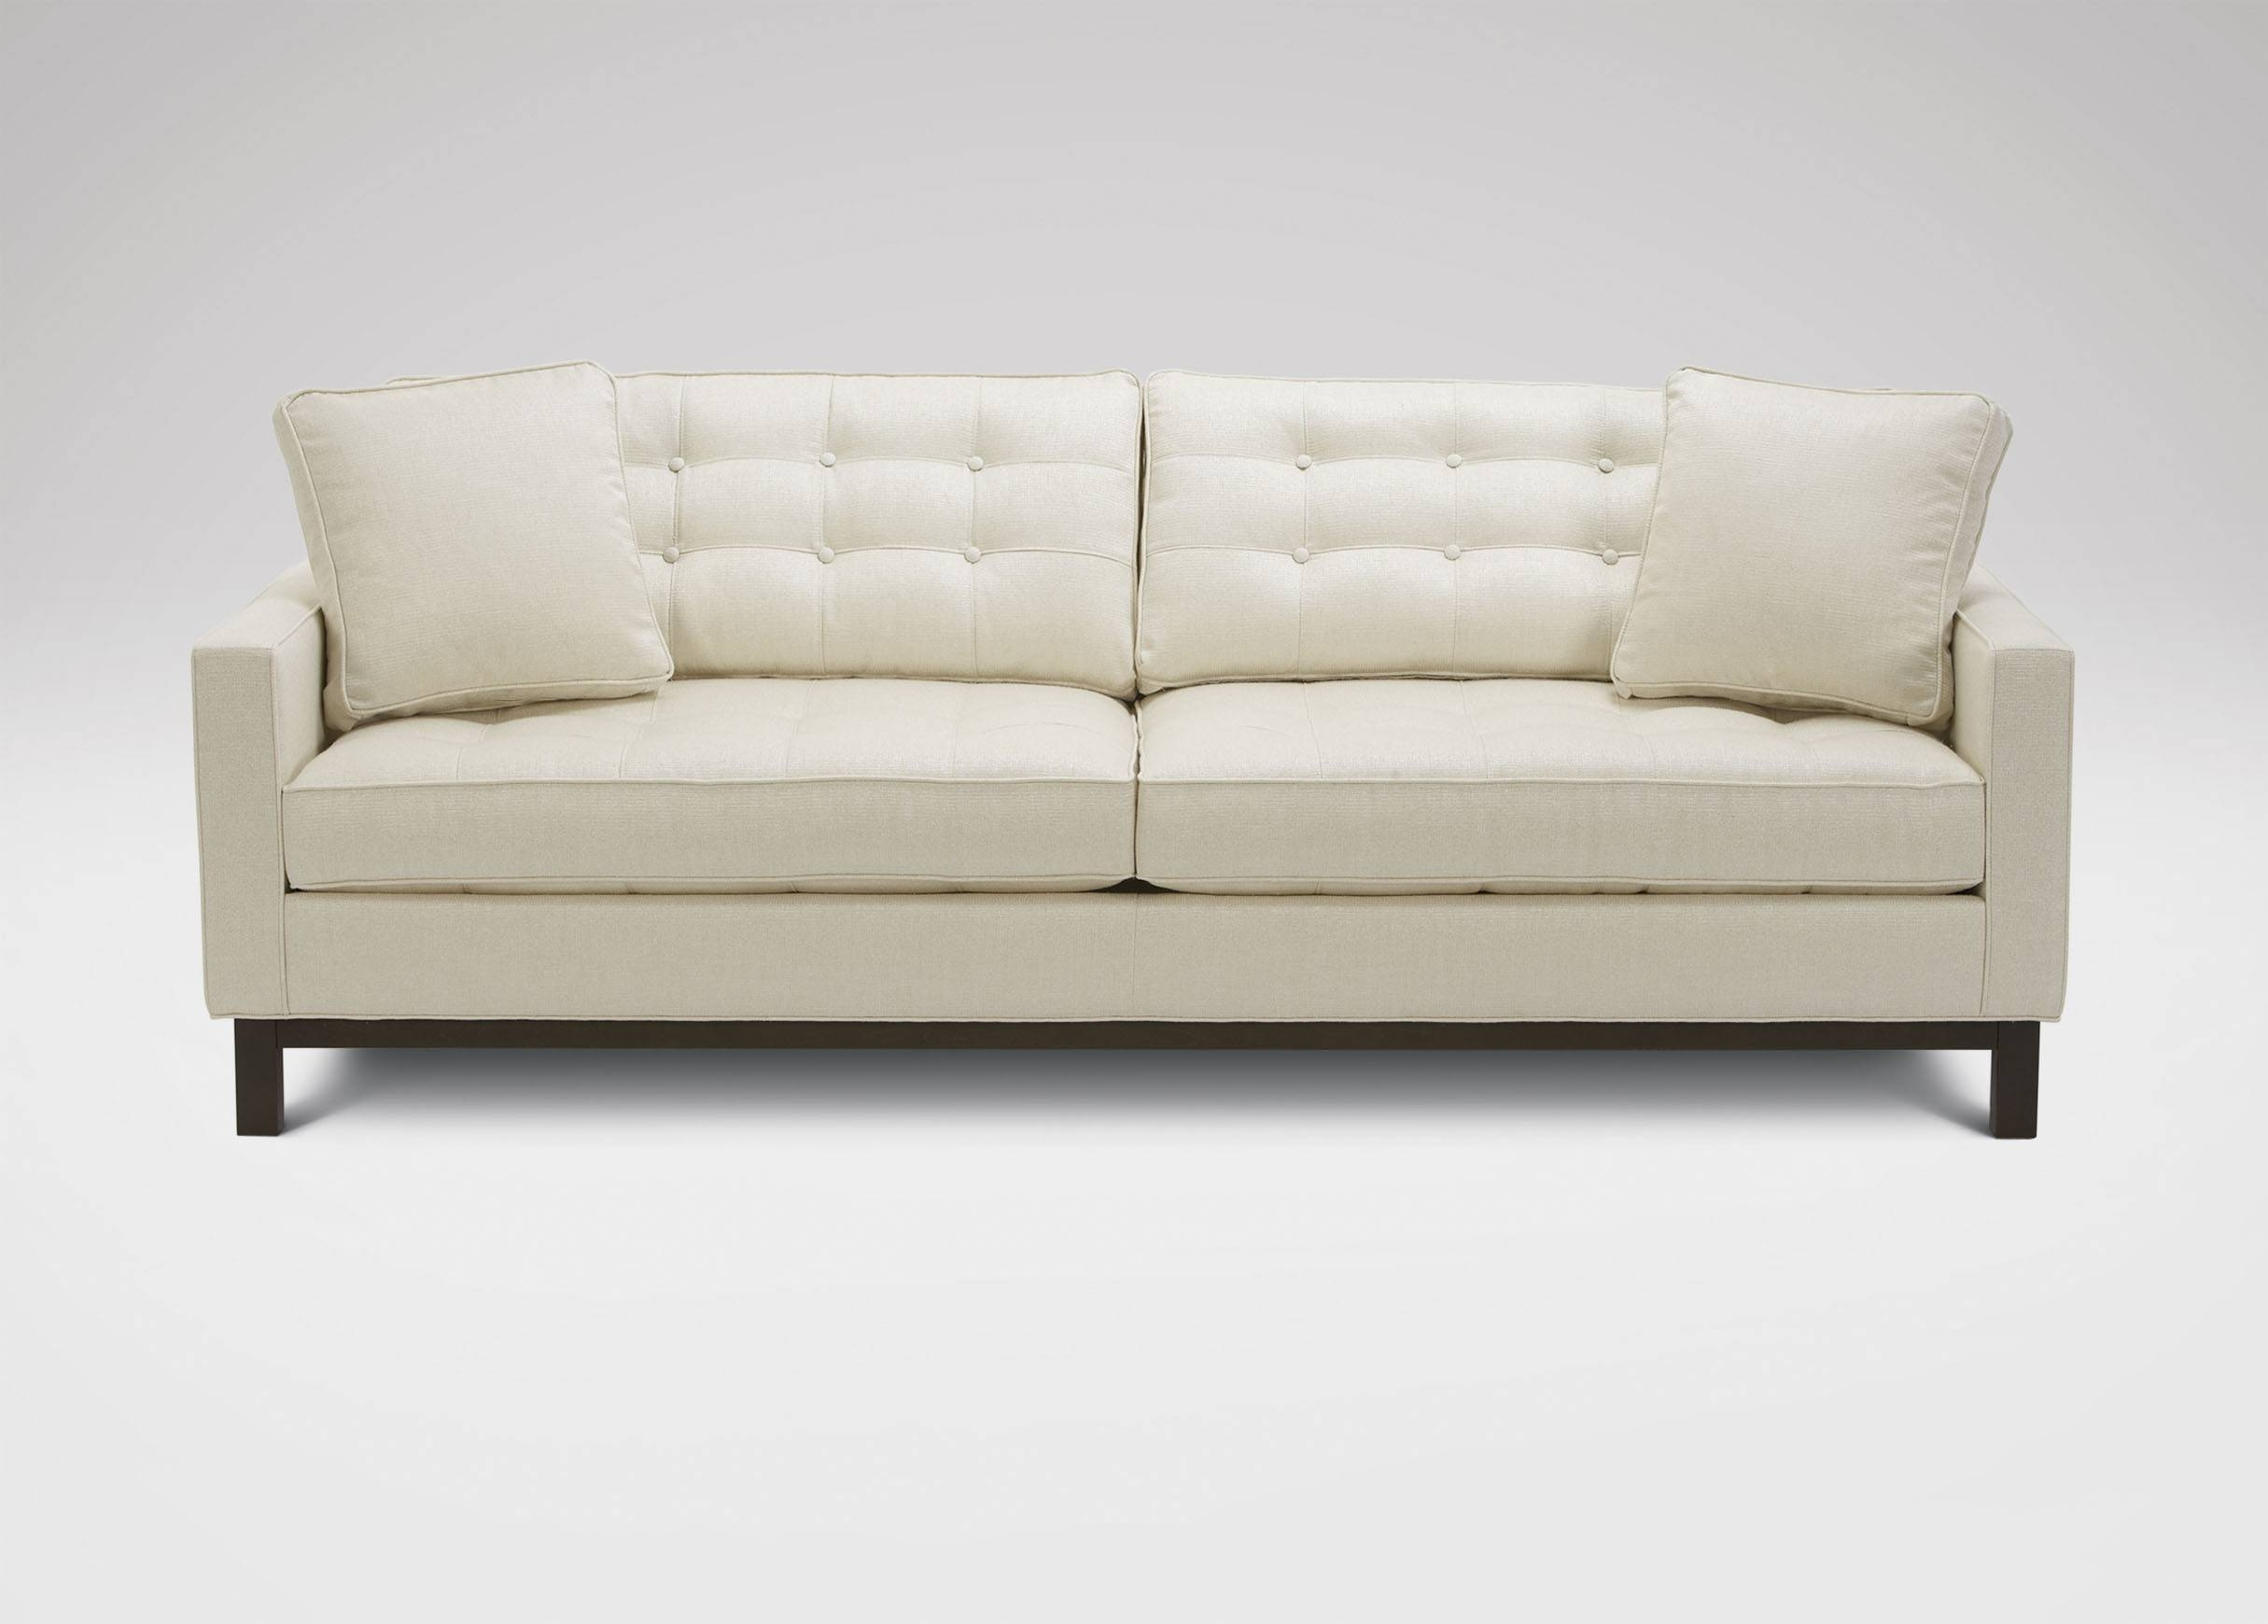 Melrose Sofa | Sofas & Loveseats inside Ethan Allen Sofas and Chairs (Image 9 of 15)